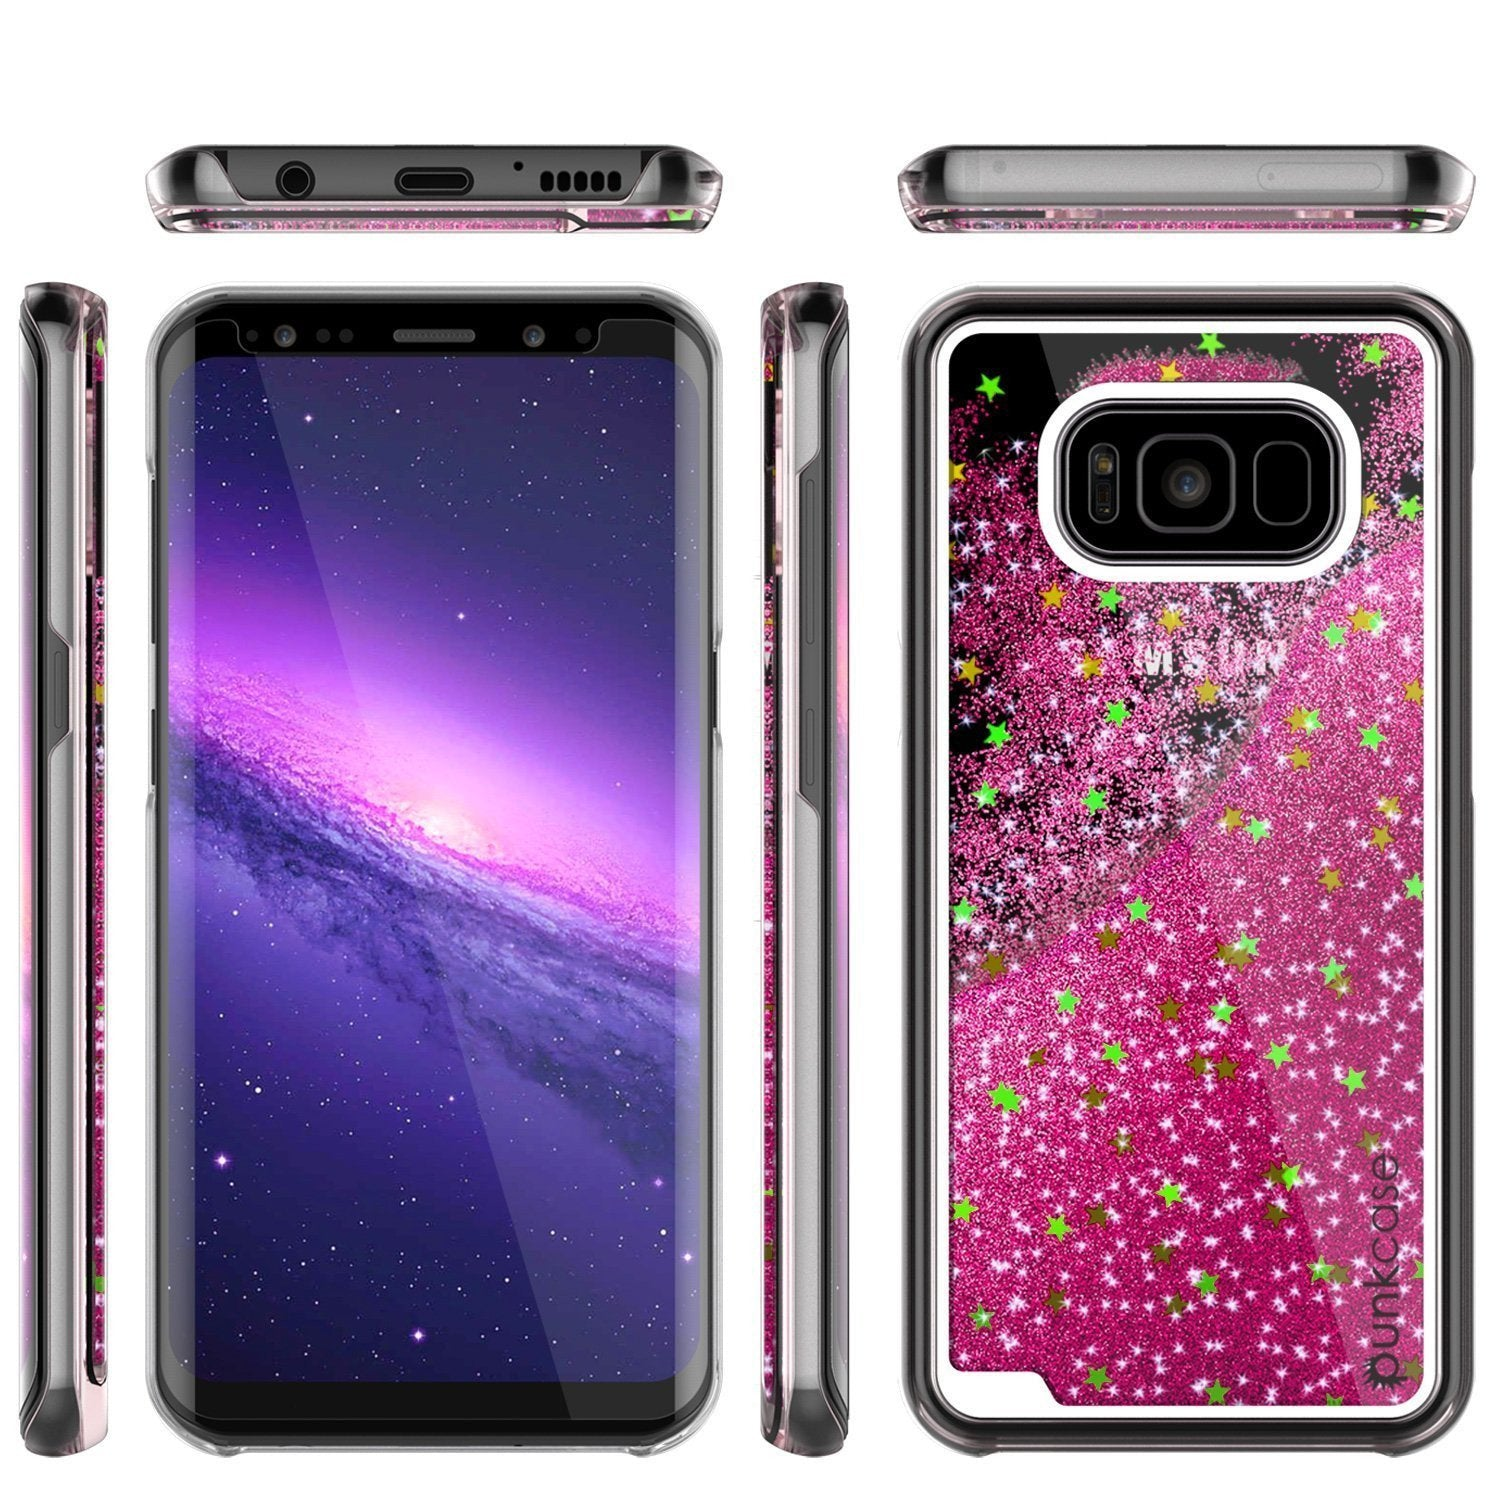 Galaxy S8 Case, Punkcase Liquid Pink Series Protective Glitter Cover